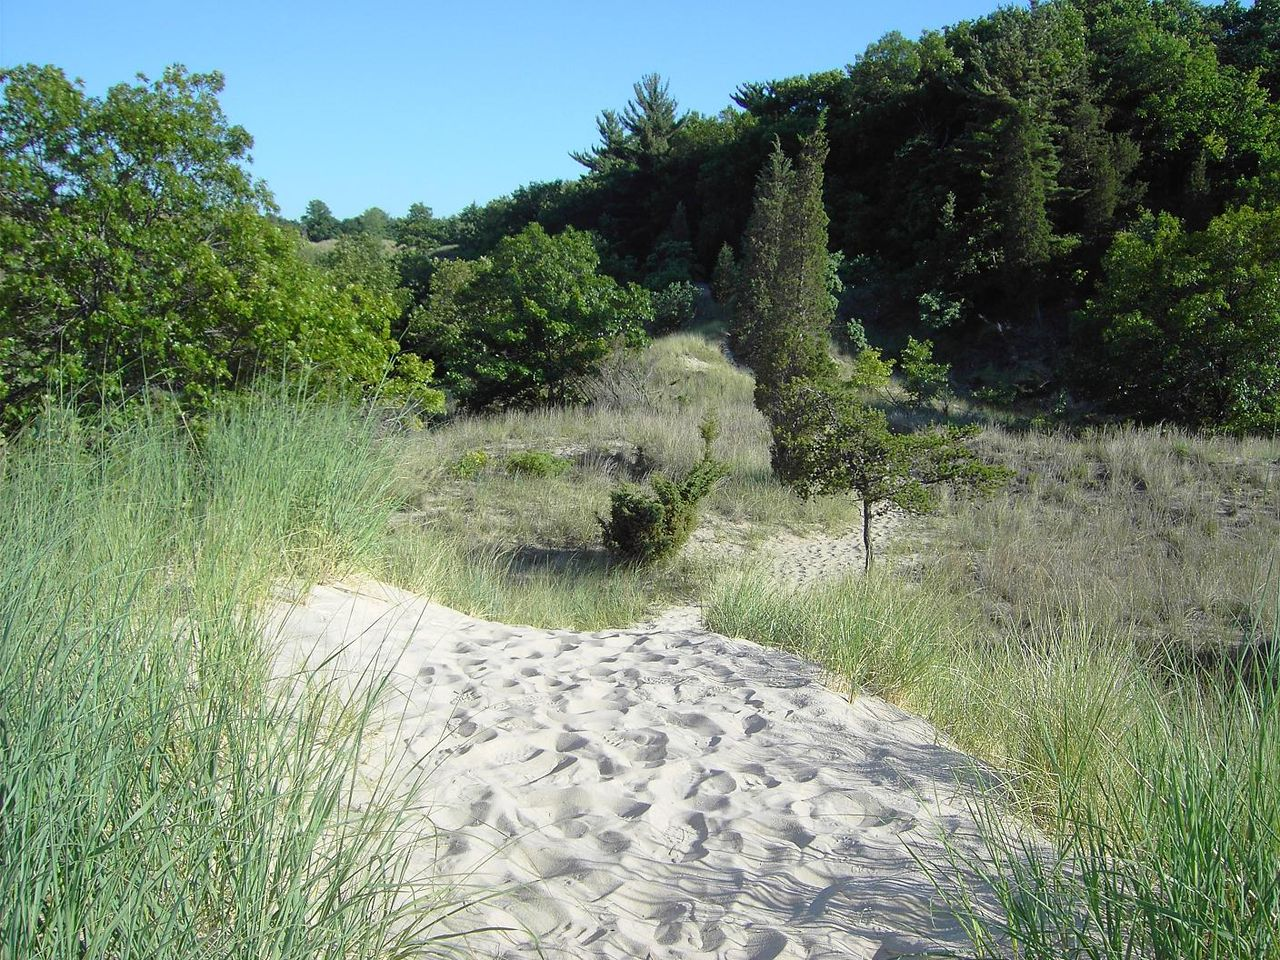 Indiana Dunes State Park in Chesterton, IN. Photo by Lori McCallister / Wikimedia.